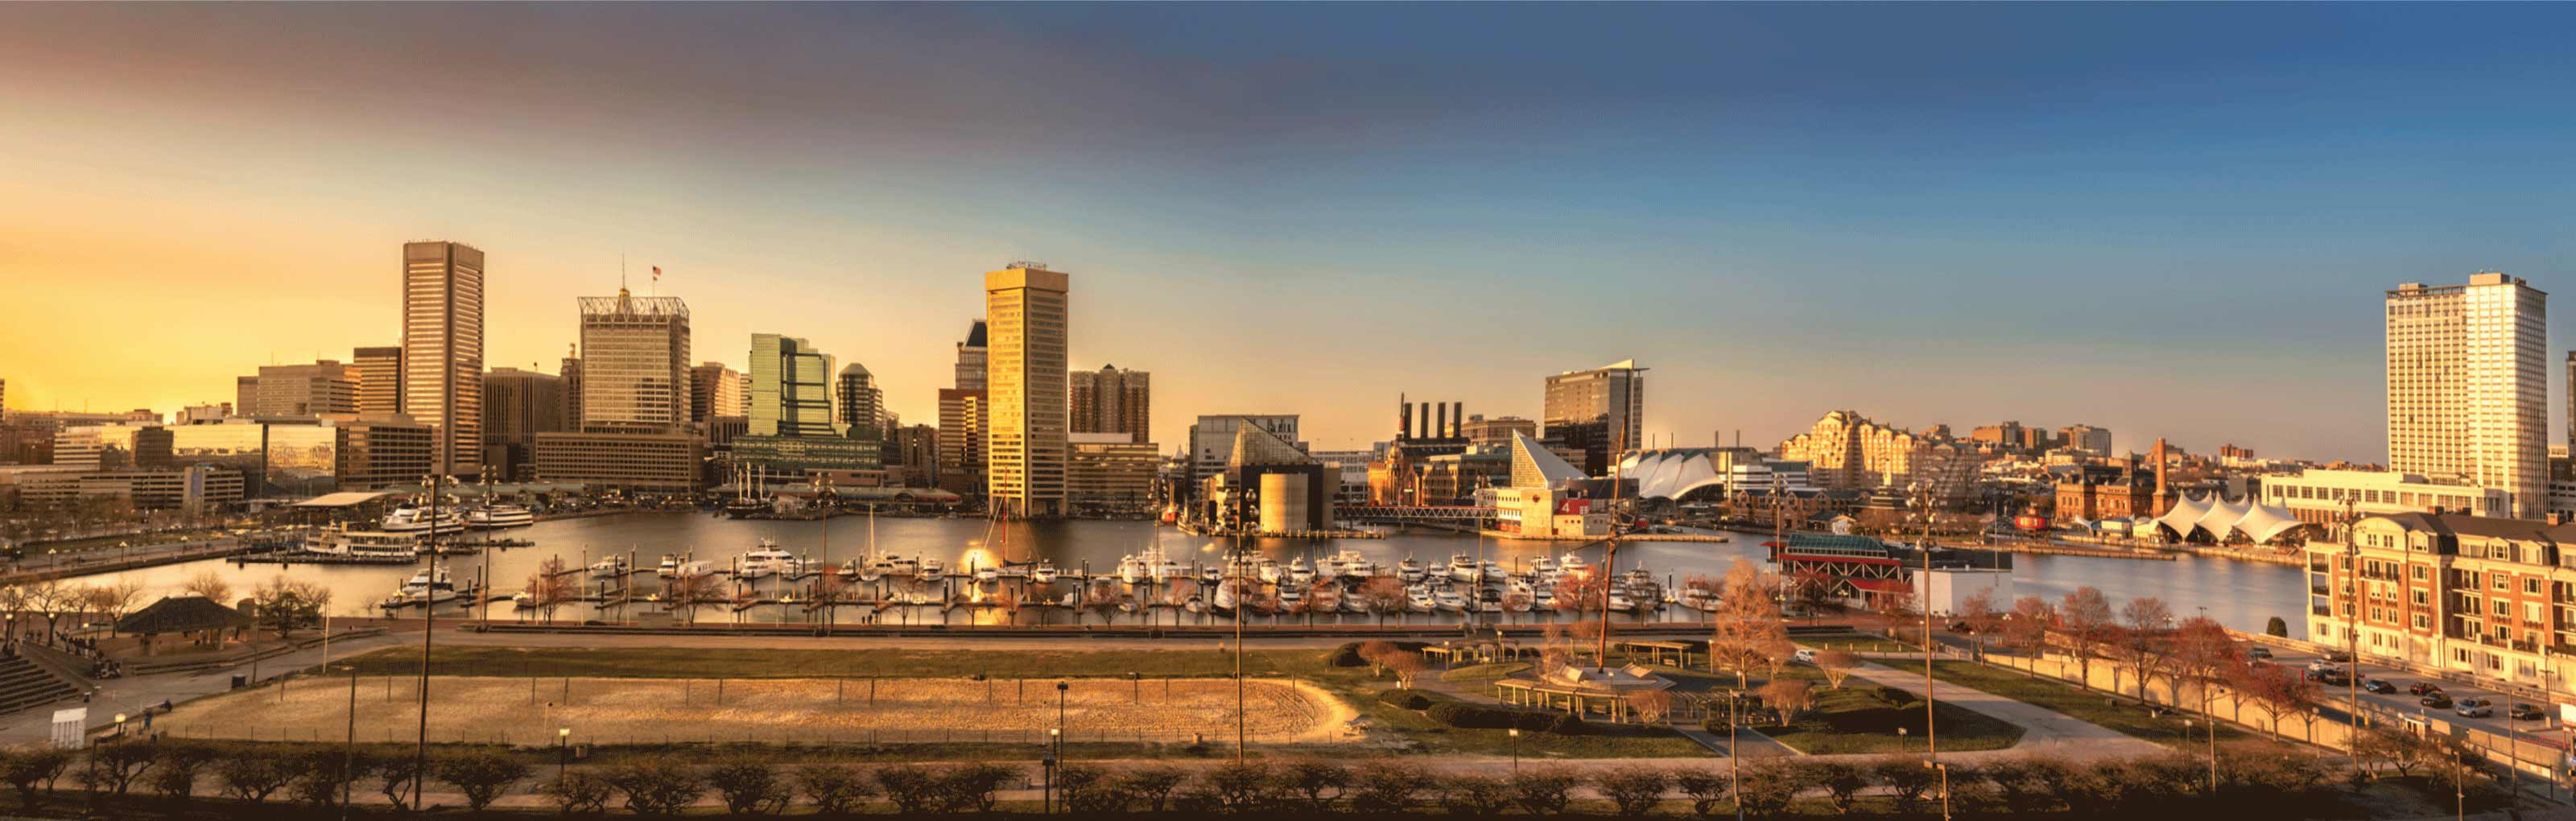 Baltimore Charter Bus Company Maryland Bus Rentals - Where is baltimore md